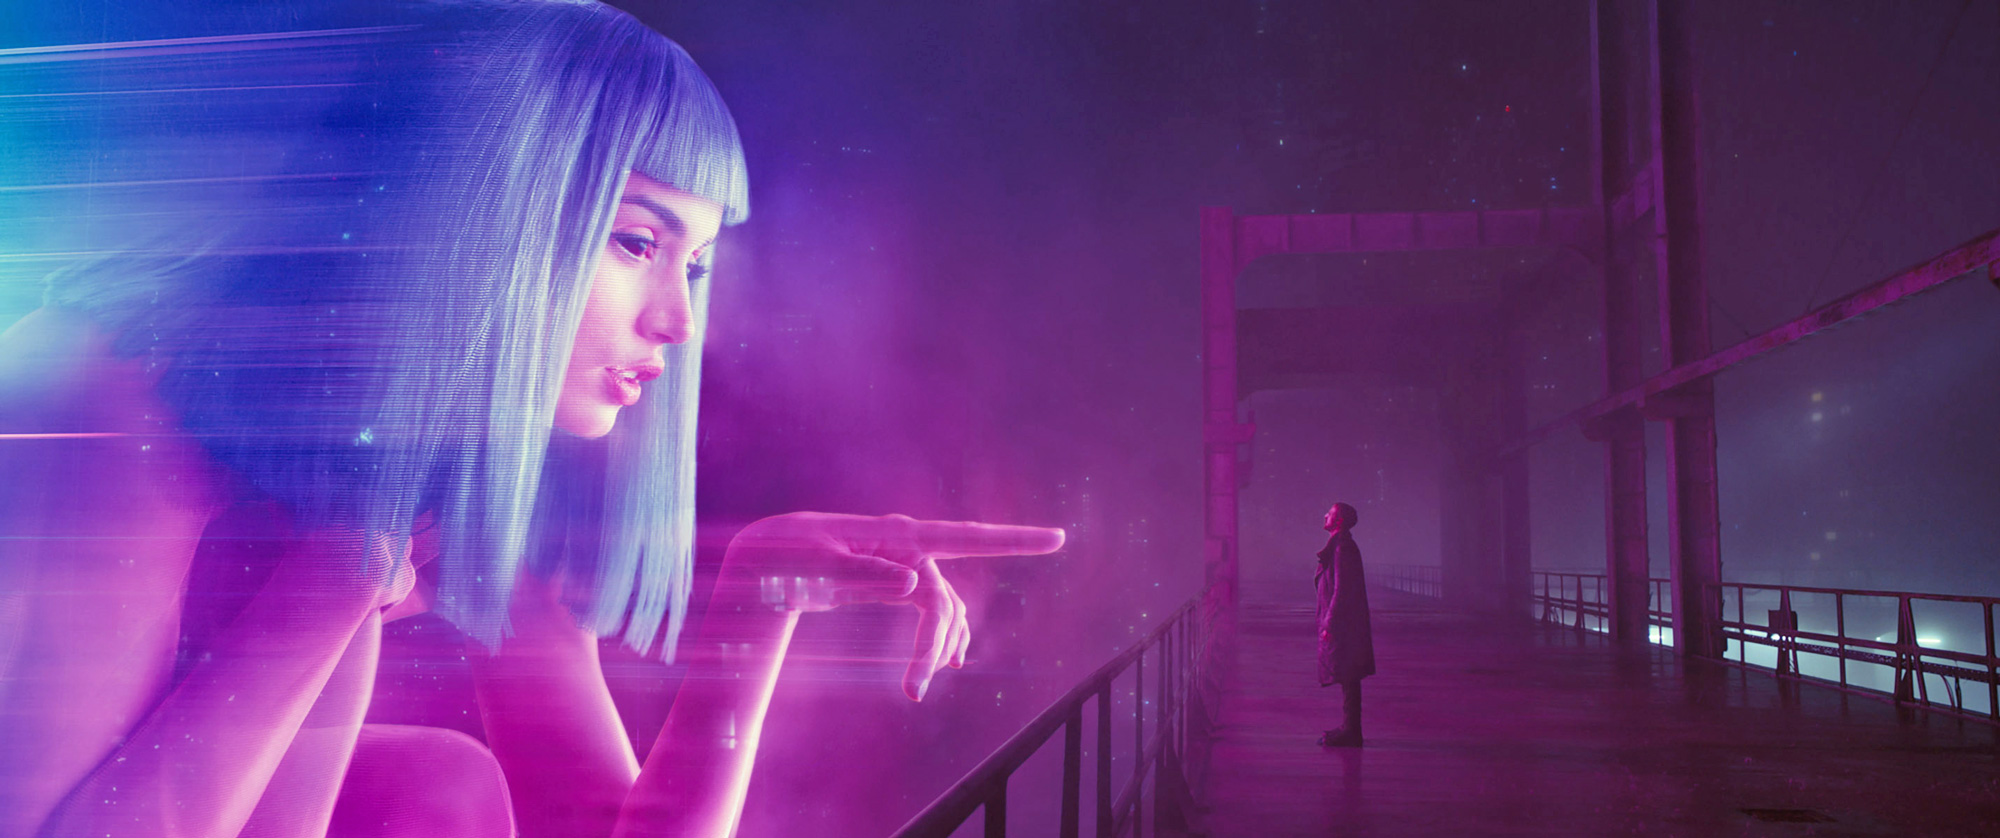 The virtual girlfriend of 2049